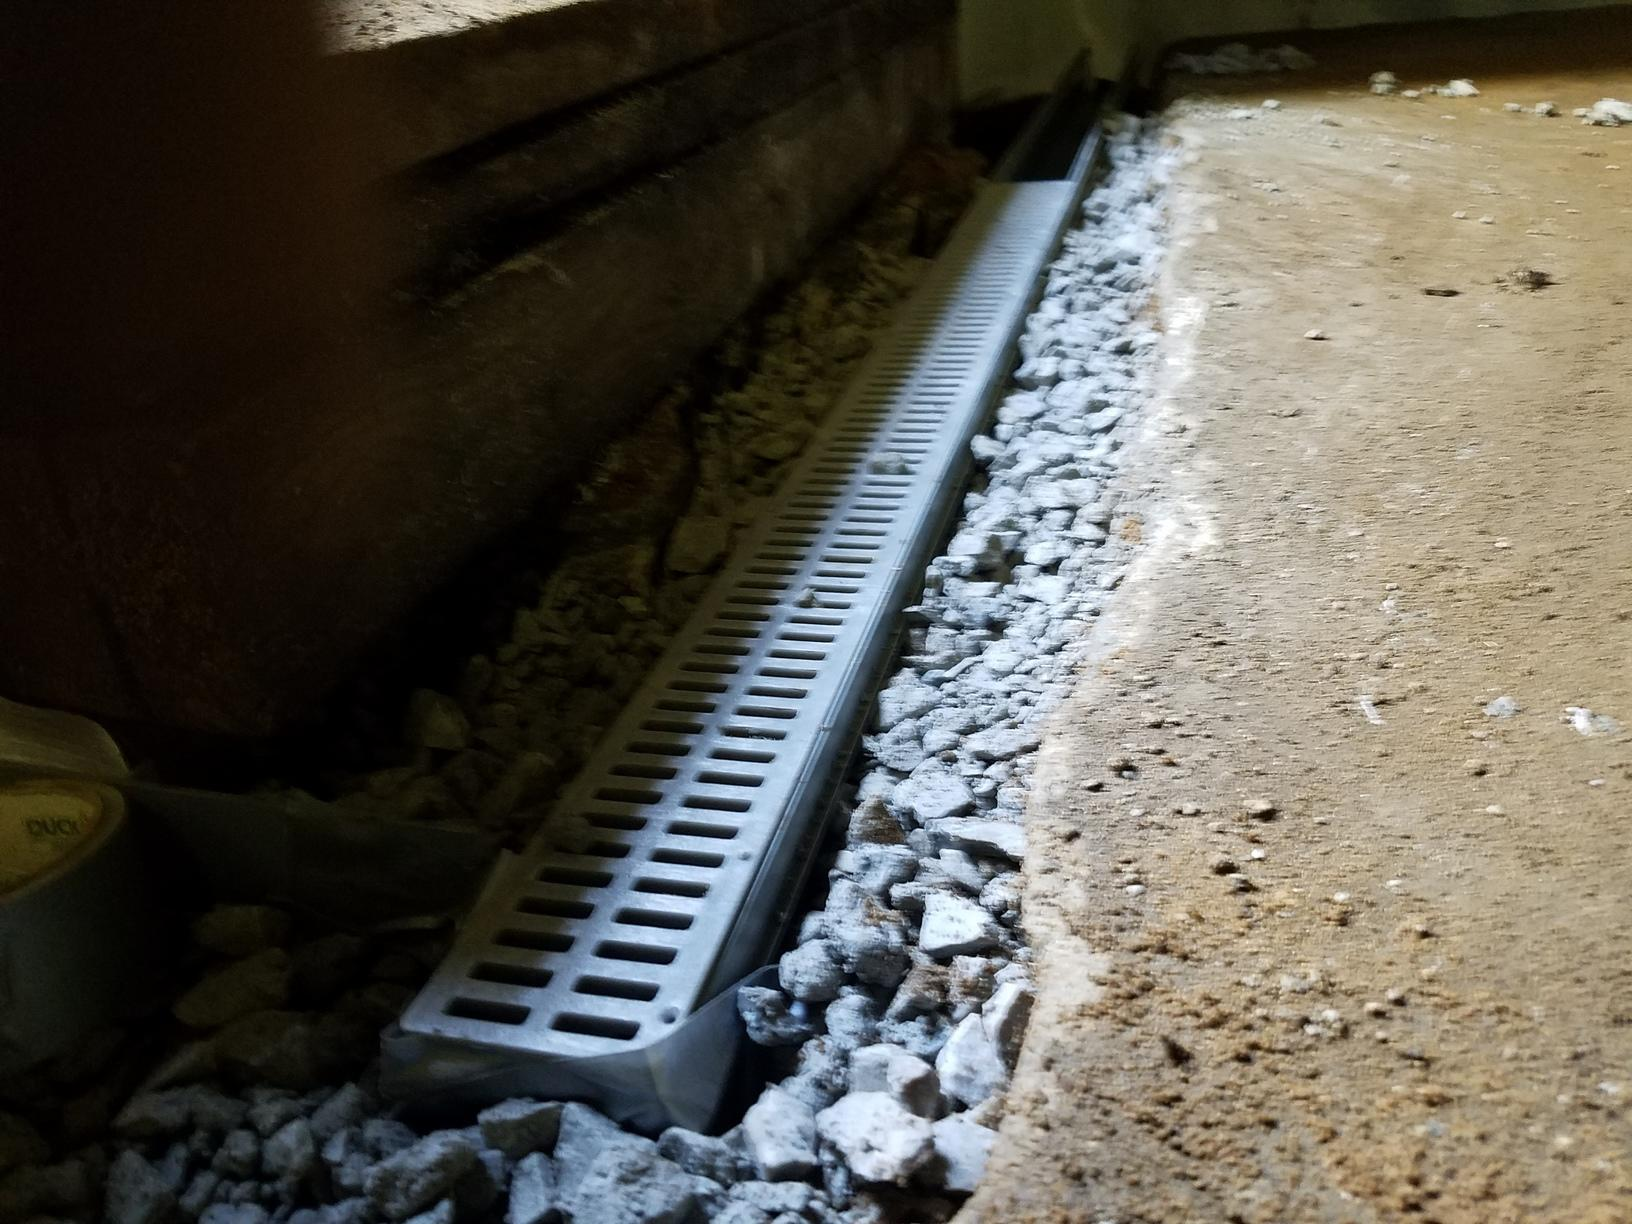 The trench drain helps channel water out.